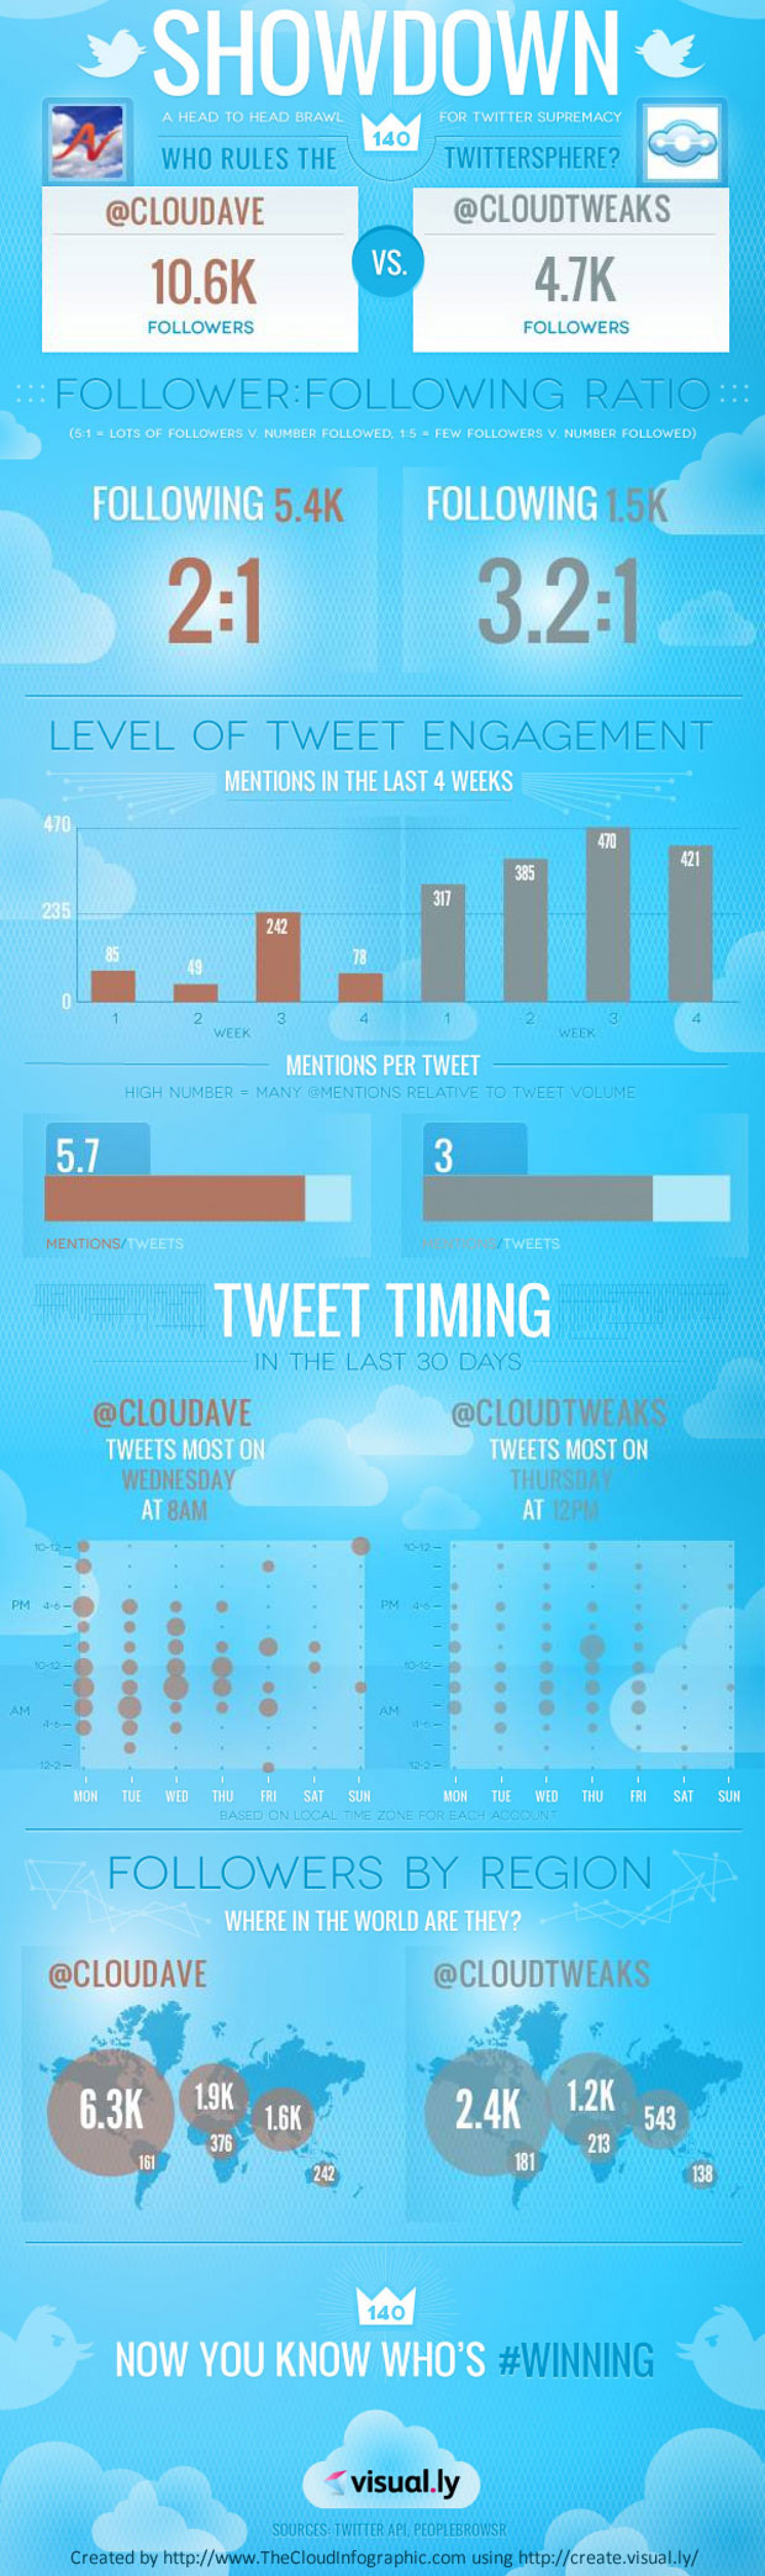 Twitter Showdown: CloudAve vs. CloudTweaks Infographic